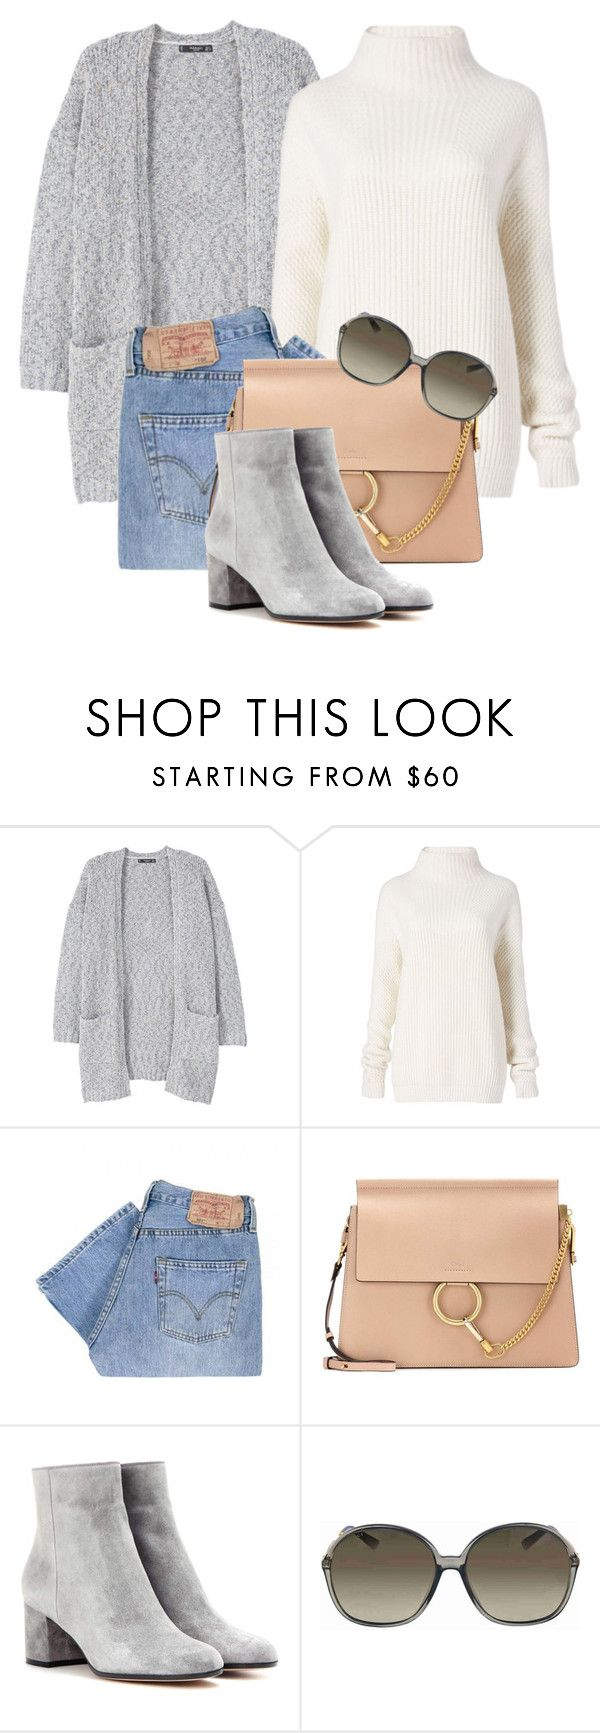 """""""10:49"""" by monmondefou ❤ liked on Polyvore featuring MANGO, Diane Von Furstenberg, Levi's, Chloé, Gianvito Rossi, Gucci, everyday and gray"""